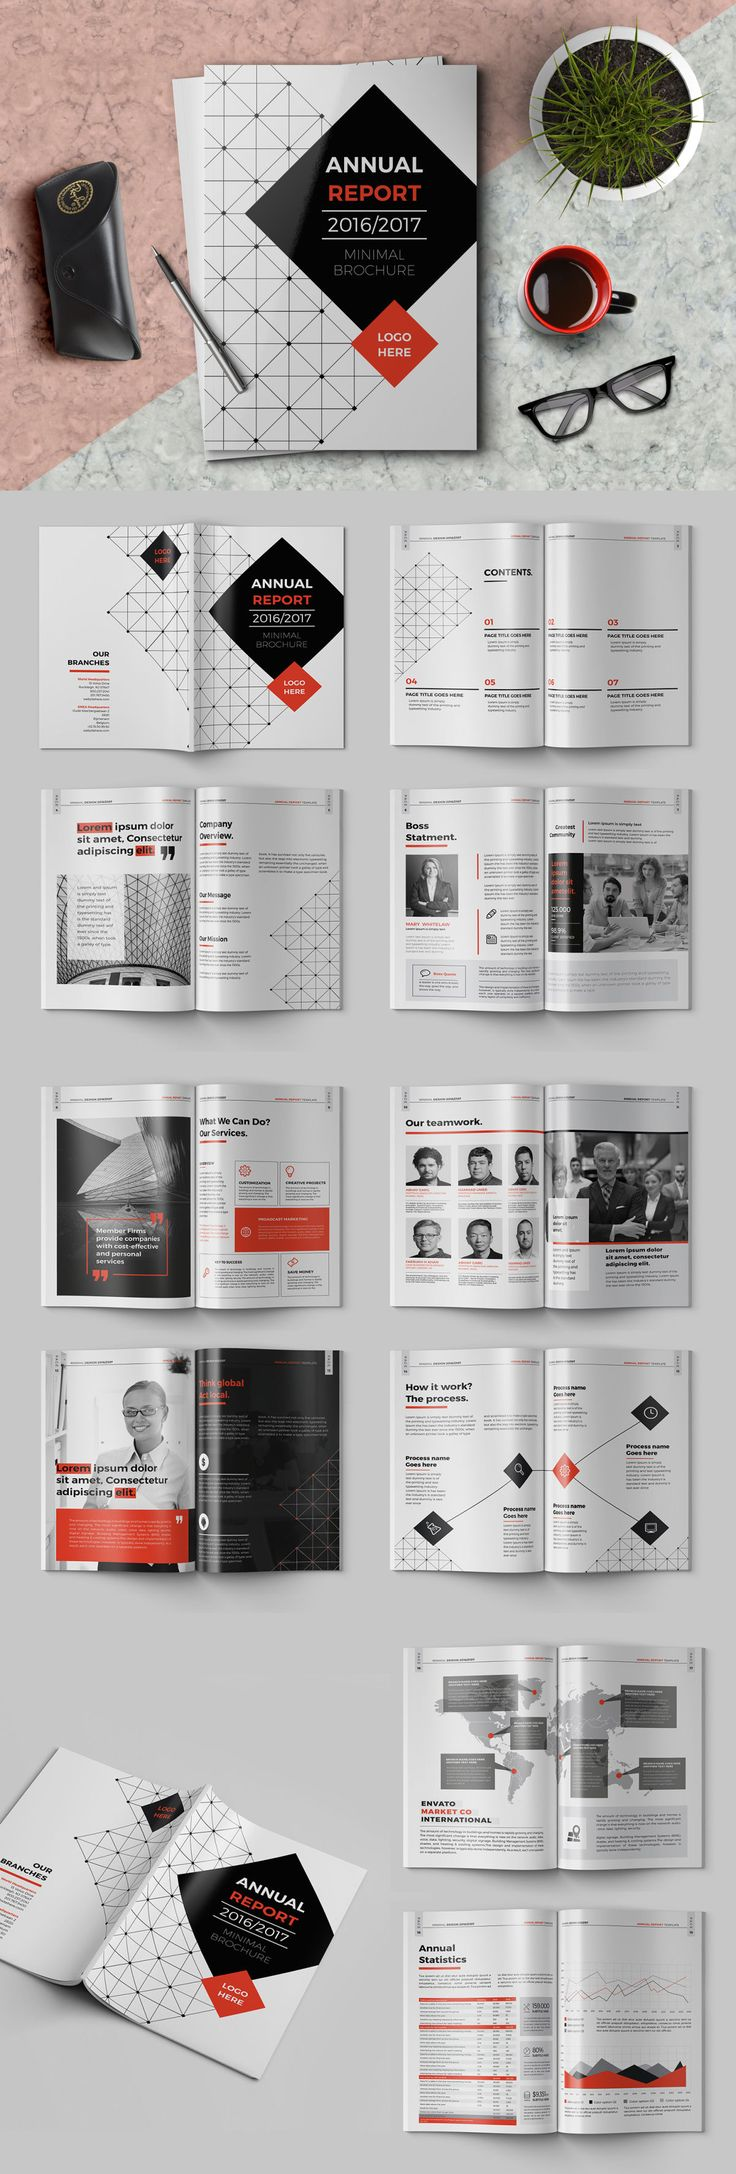 Elegant Annual Report Brochure Template InDesign INDD - 20 Pages, A4 + US letter